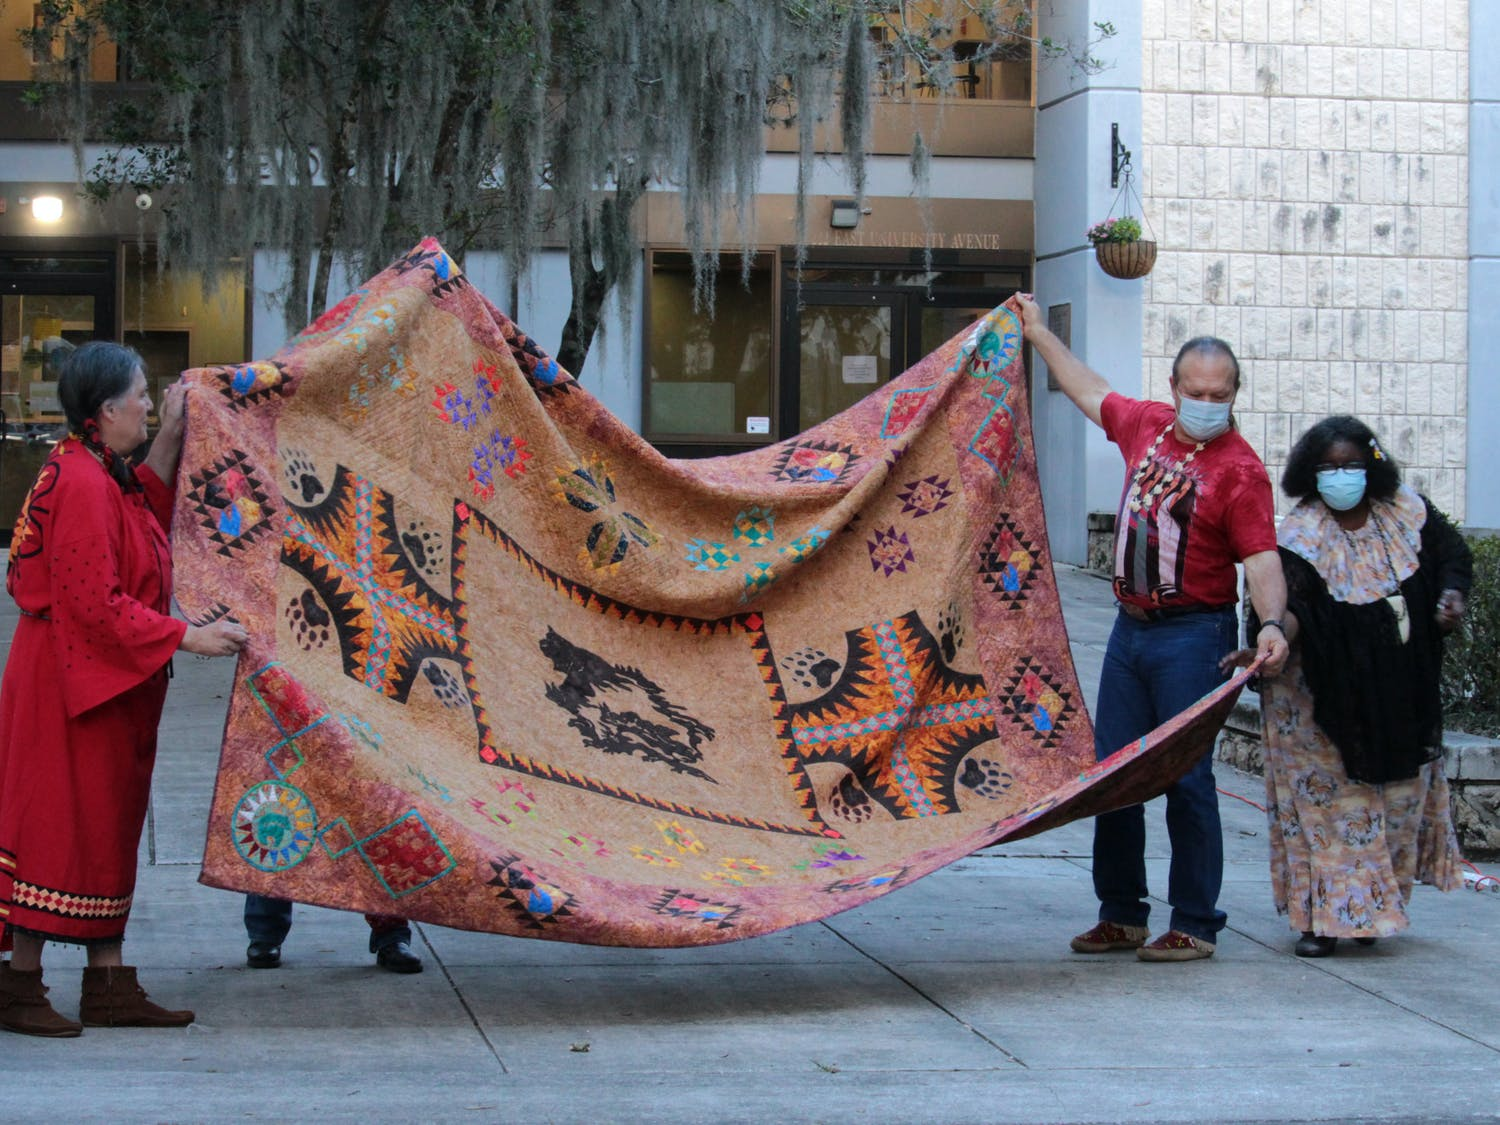 Dave Trezak (second from the right), Sioux tribe, helps to display a handmade, Native American quilt at Gainesville City Hall on Monday, Oct. 11, 2021.